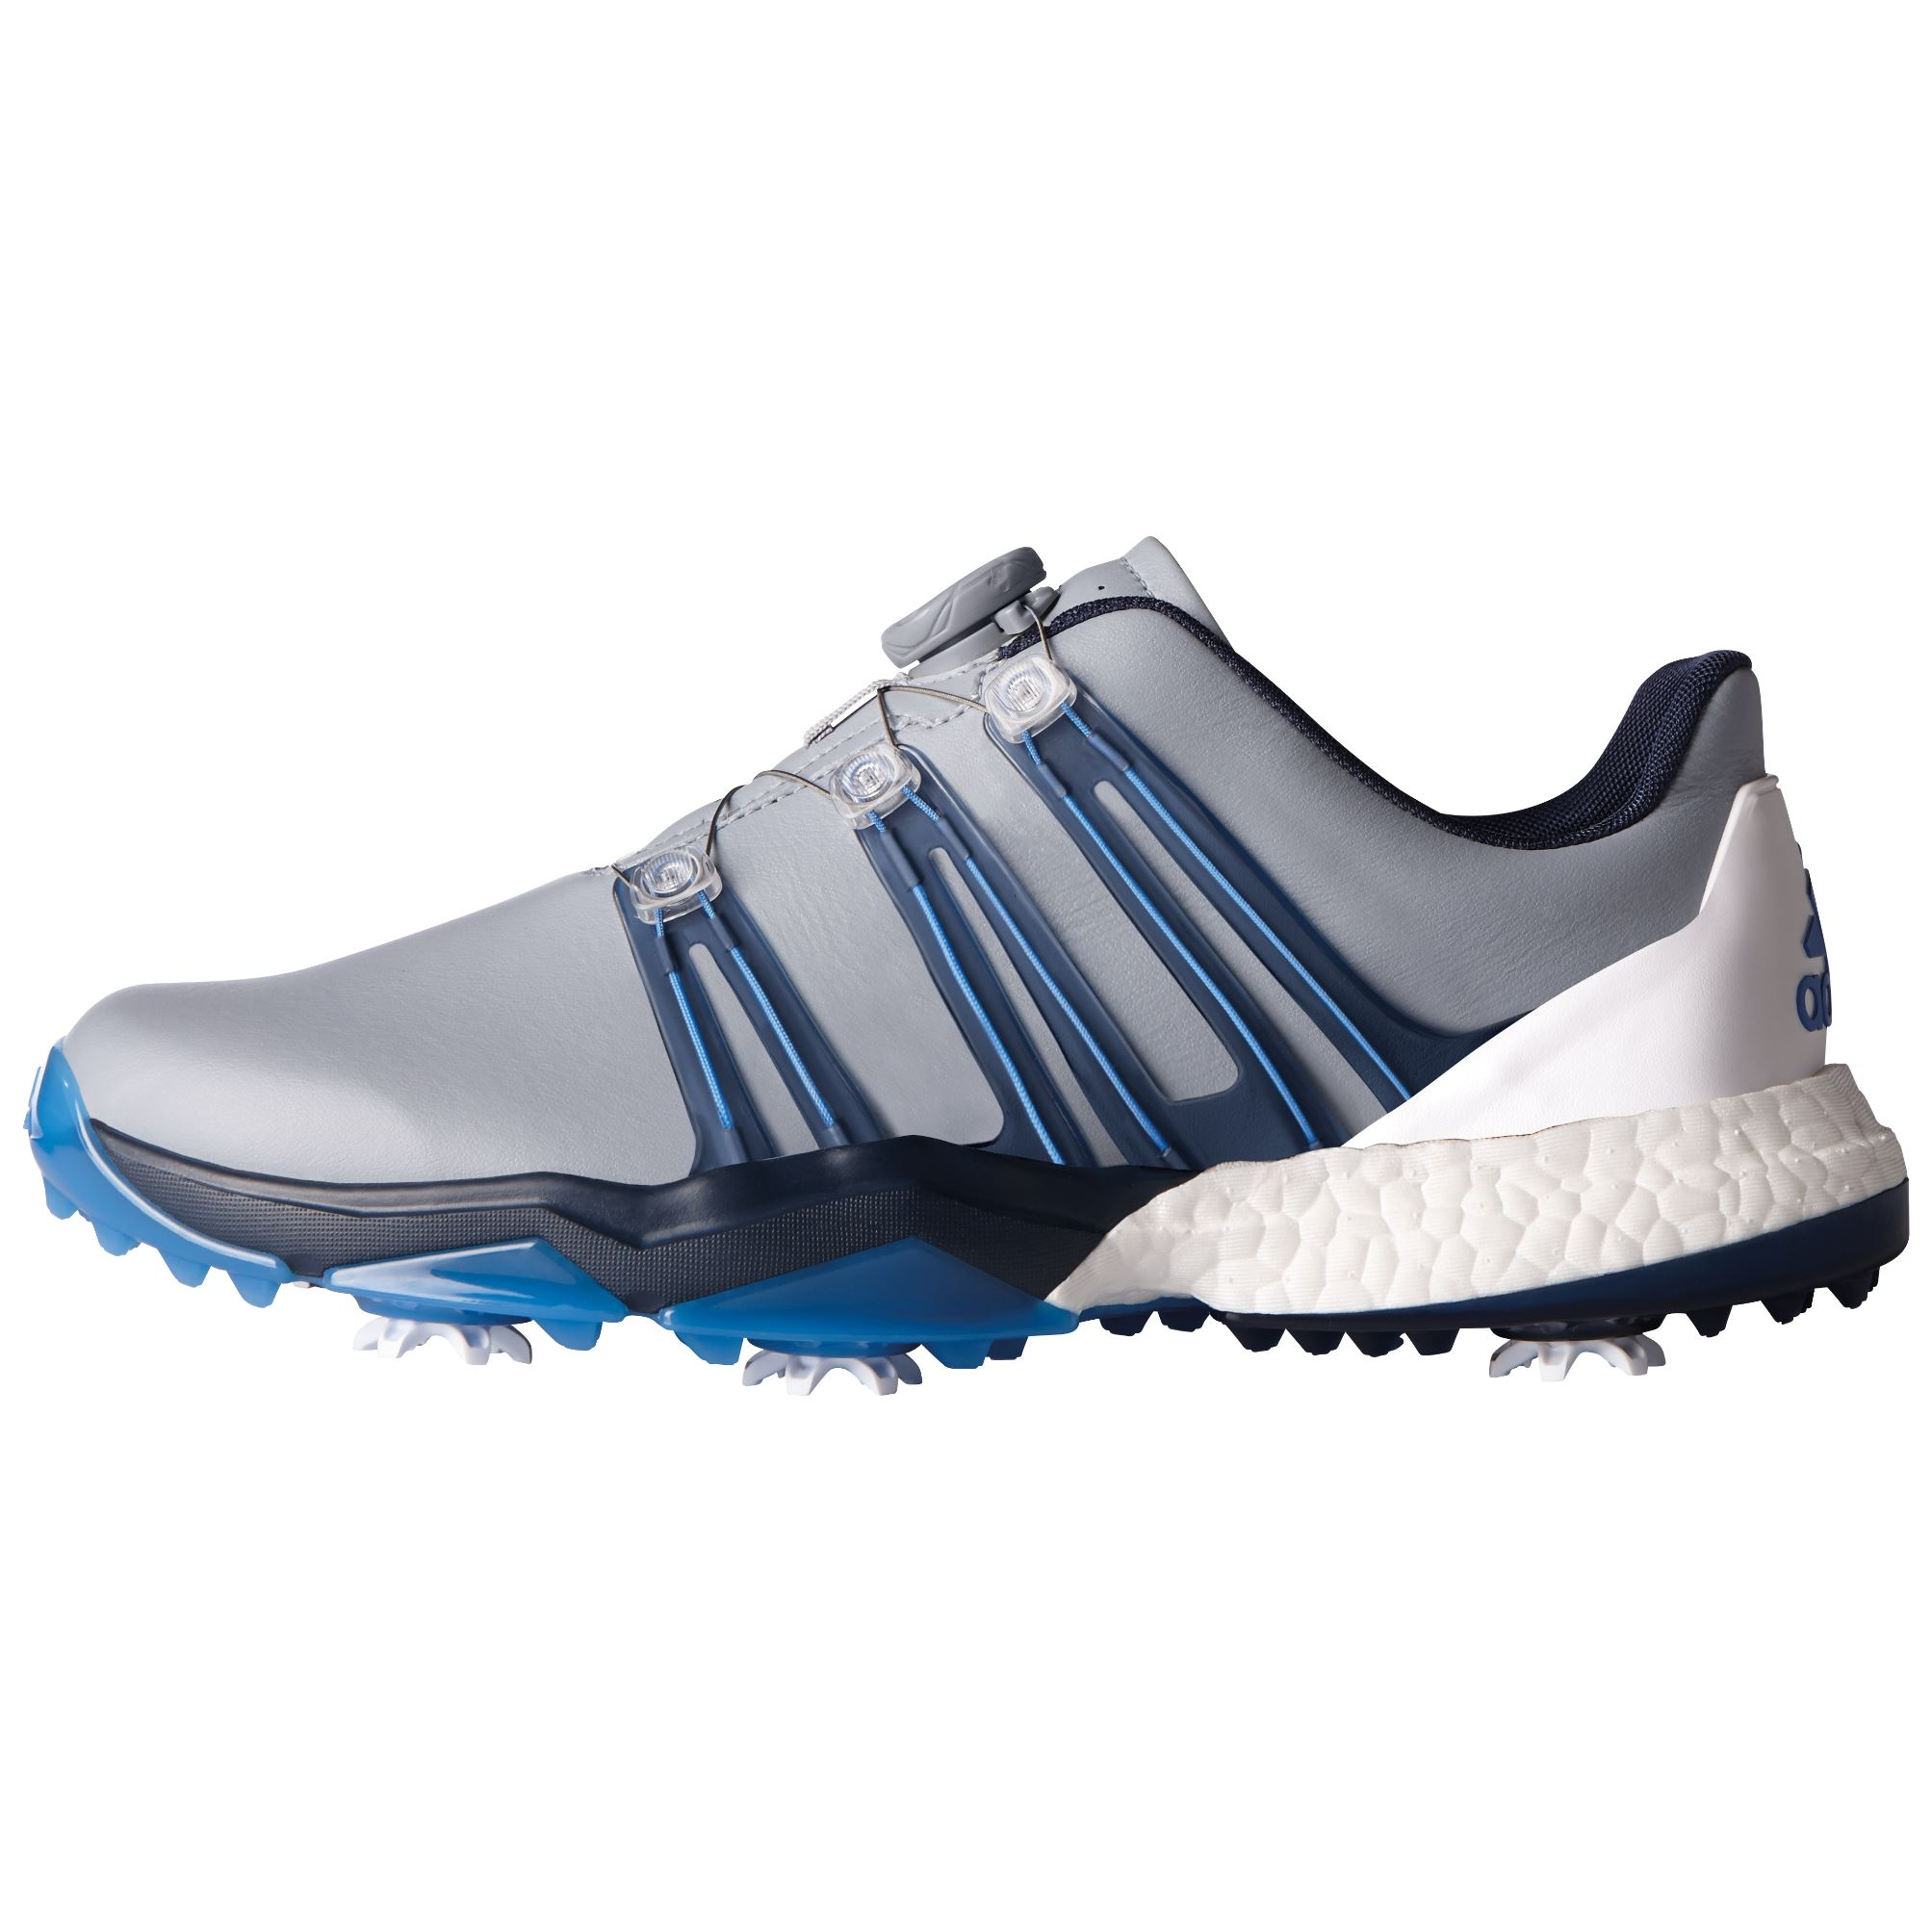 414bb441dba69d Adidas Powerband BOA Boost Shoes